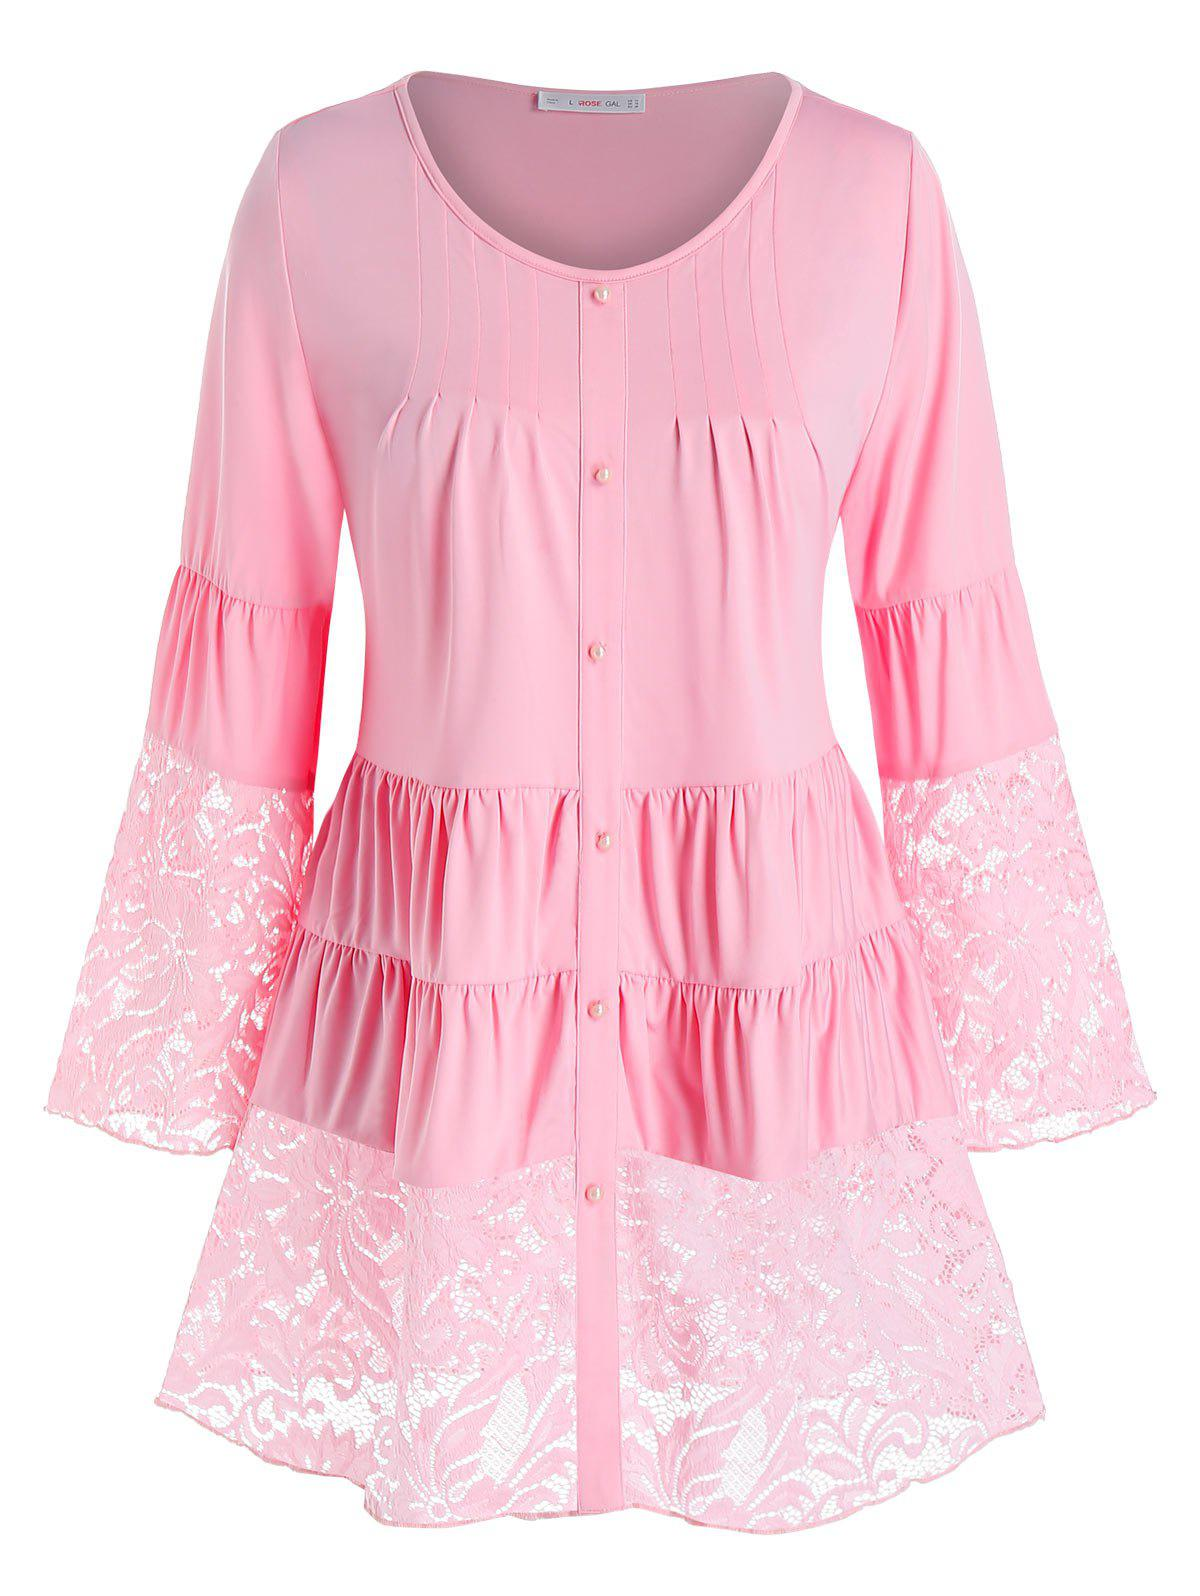 Plus Size Lace Insert Ruched Tiered Tunic Blouse - LIGHT PINK 5X